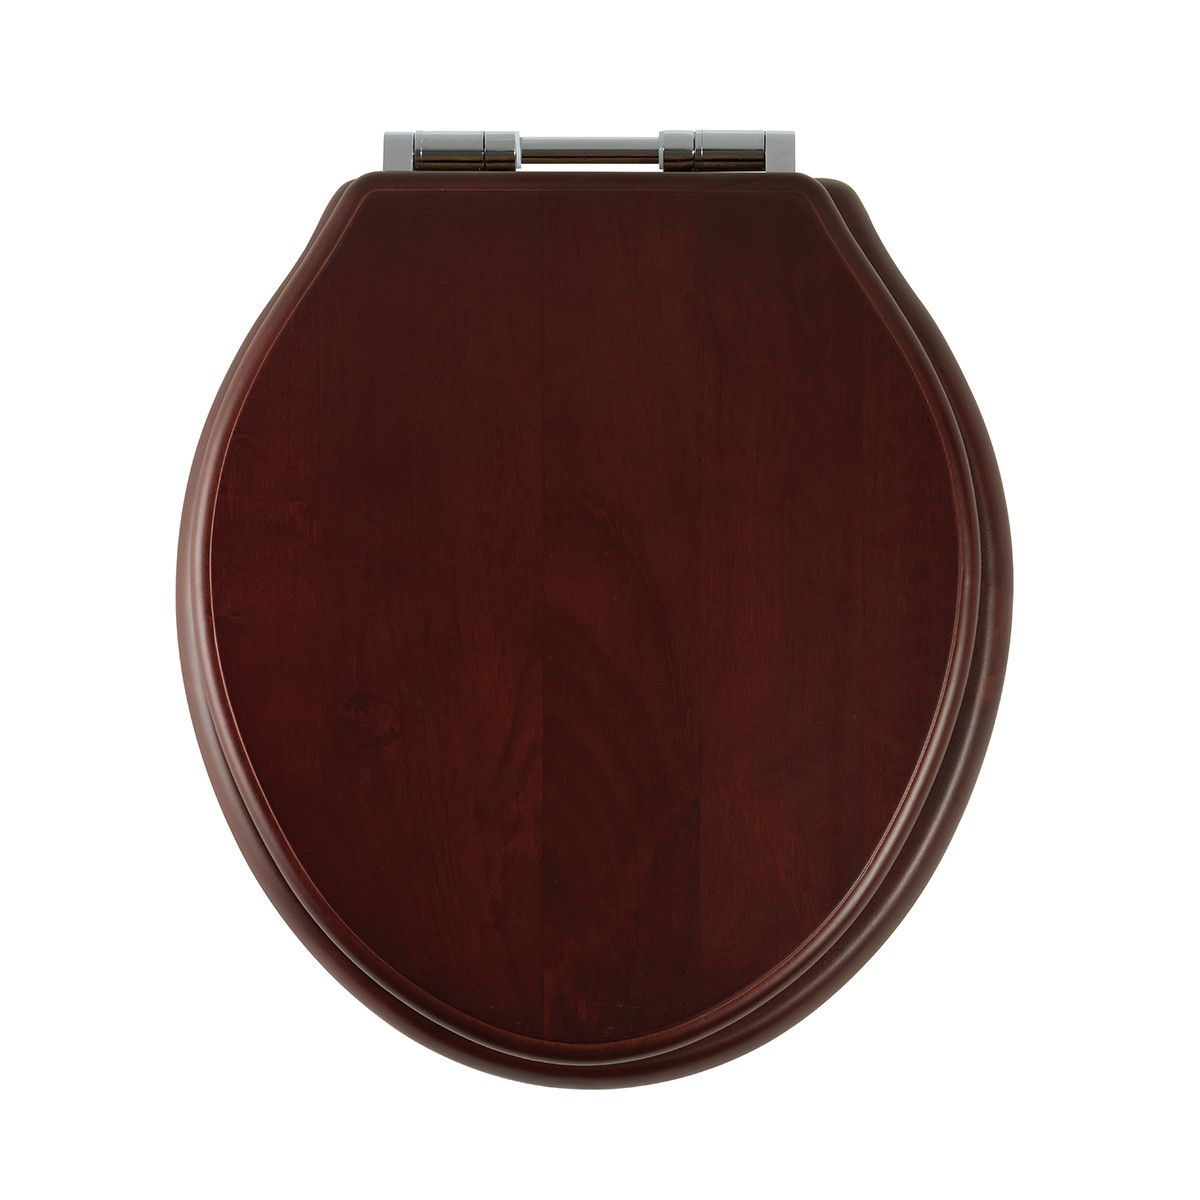 Roper Rhodes Greenwich Solid Wood Mahogany Soft Close Toilet Seat